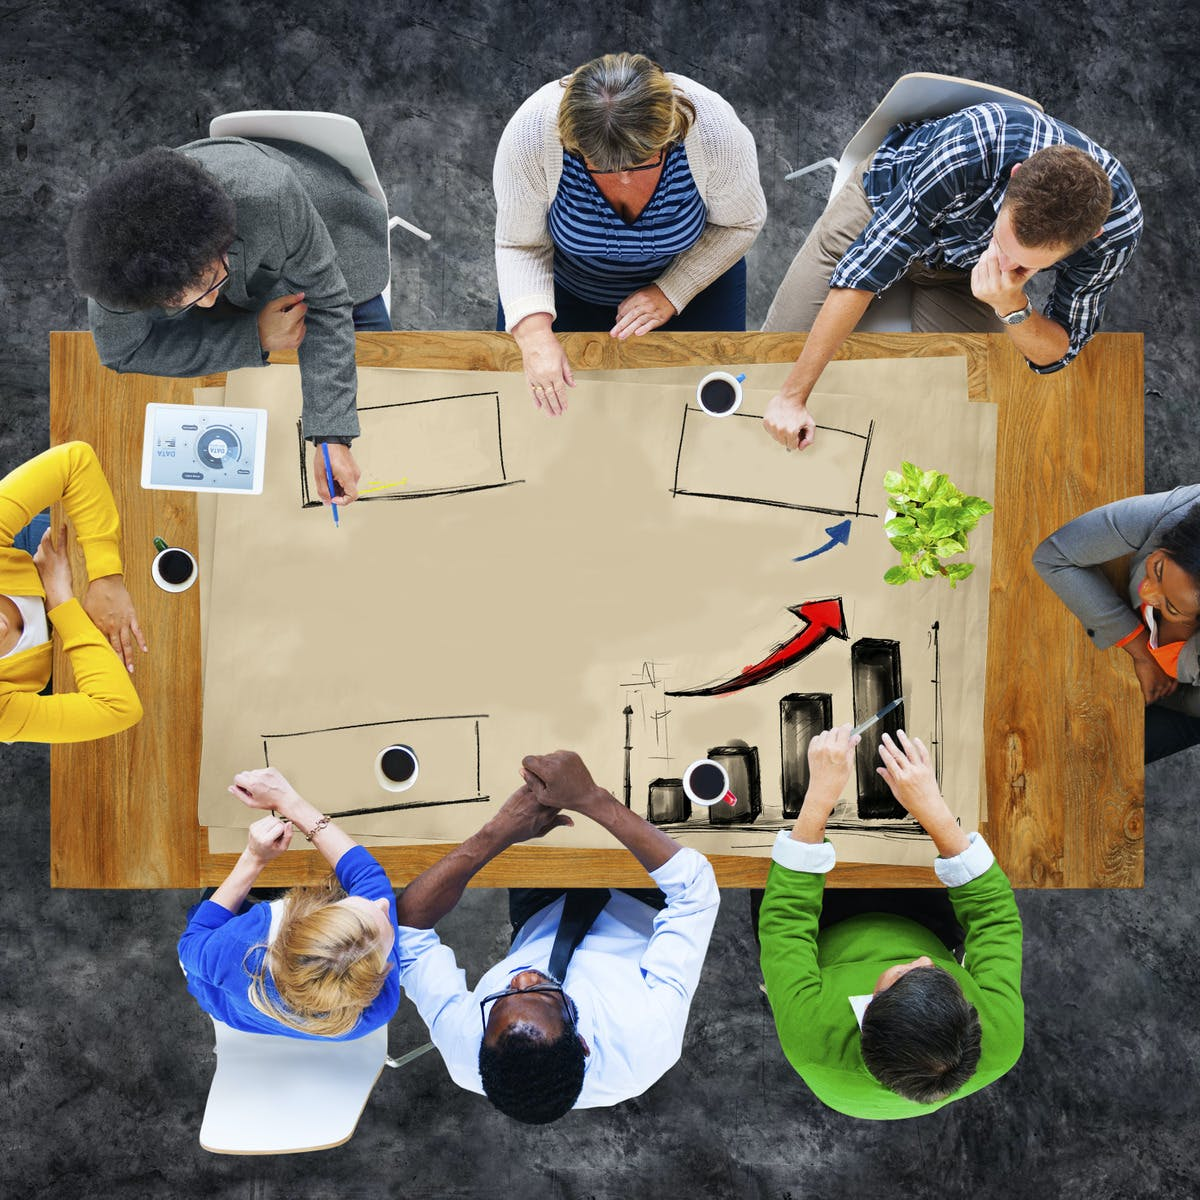 The Roles and Responsibilities of Nonprofit Boards of Directors within the Governance Process